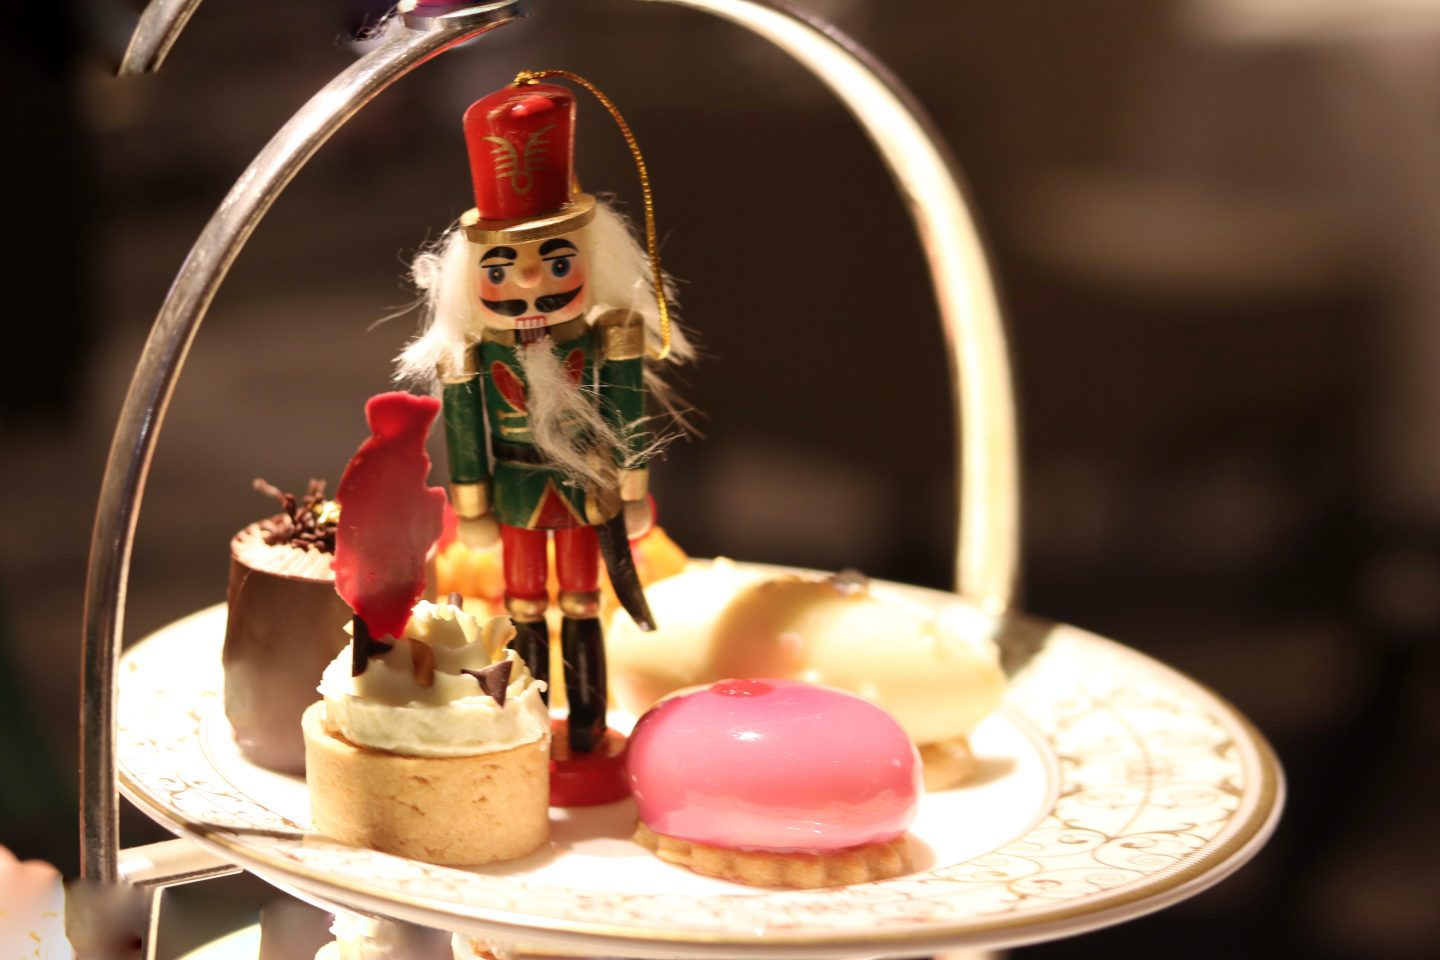 The Nutcracker Afternoon Tea at JW Marriott Grosvenor House